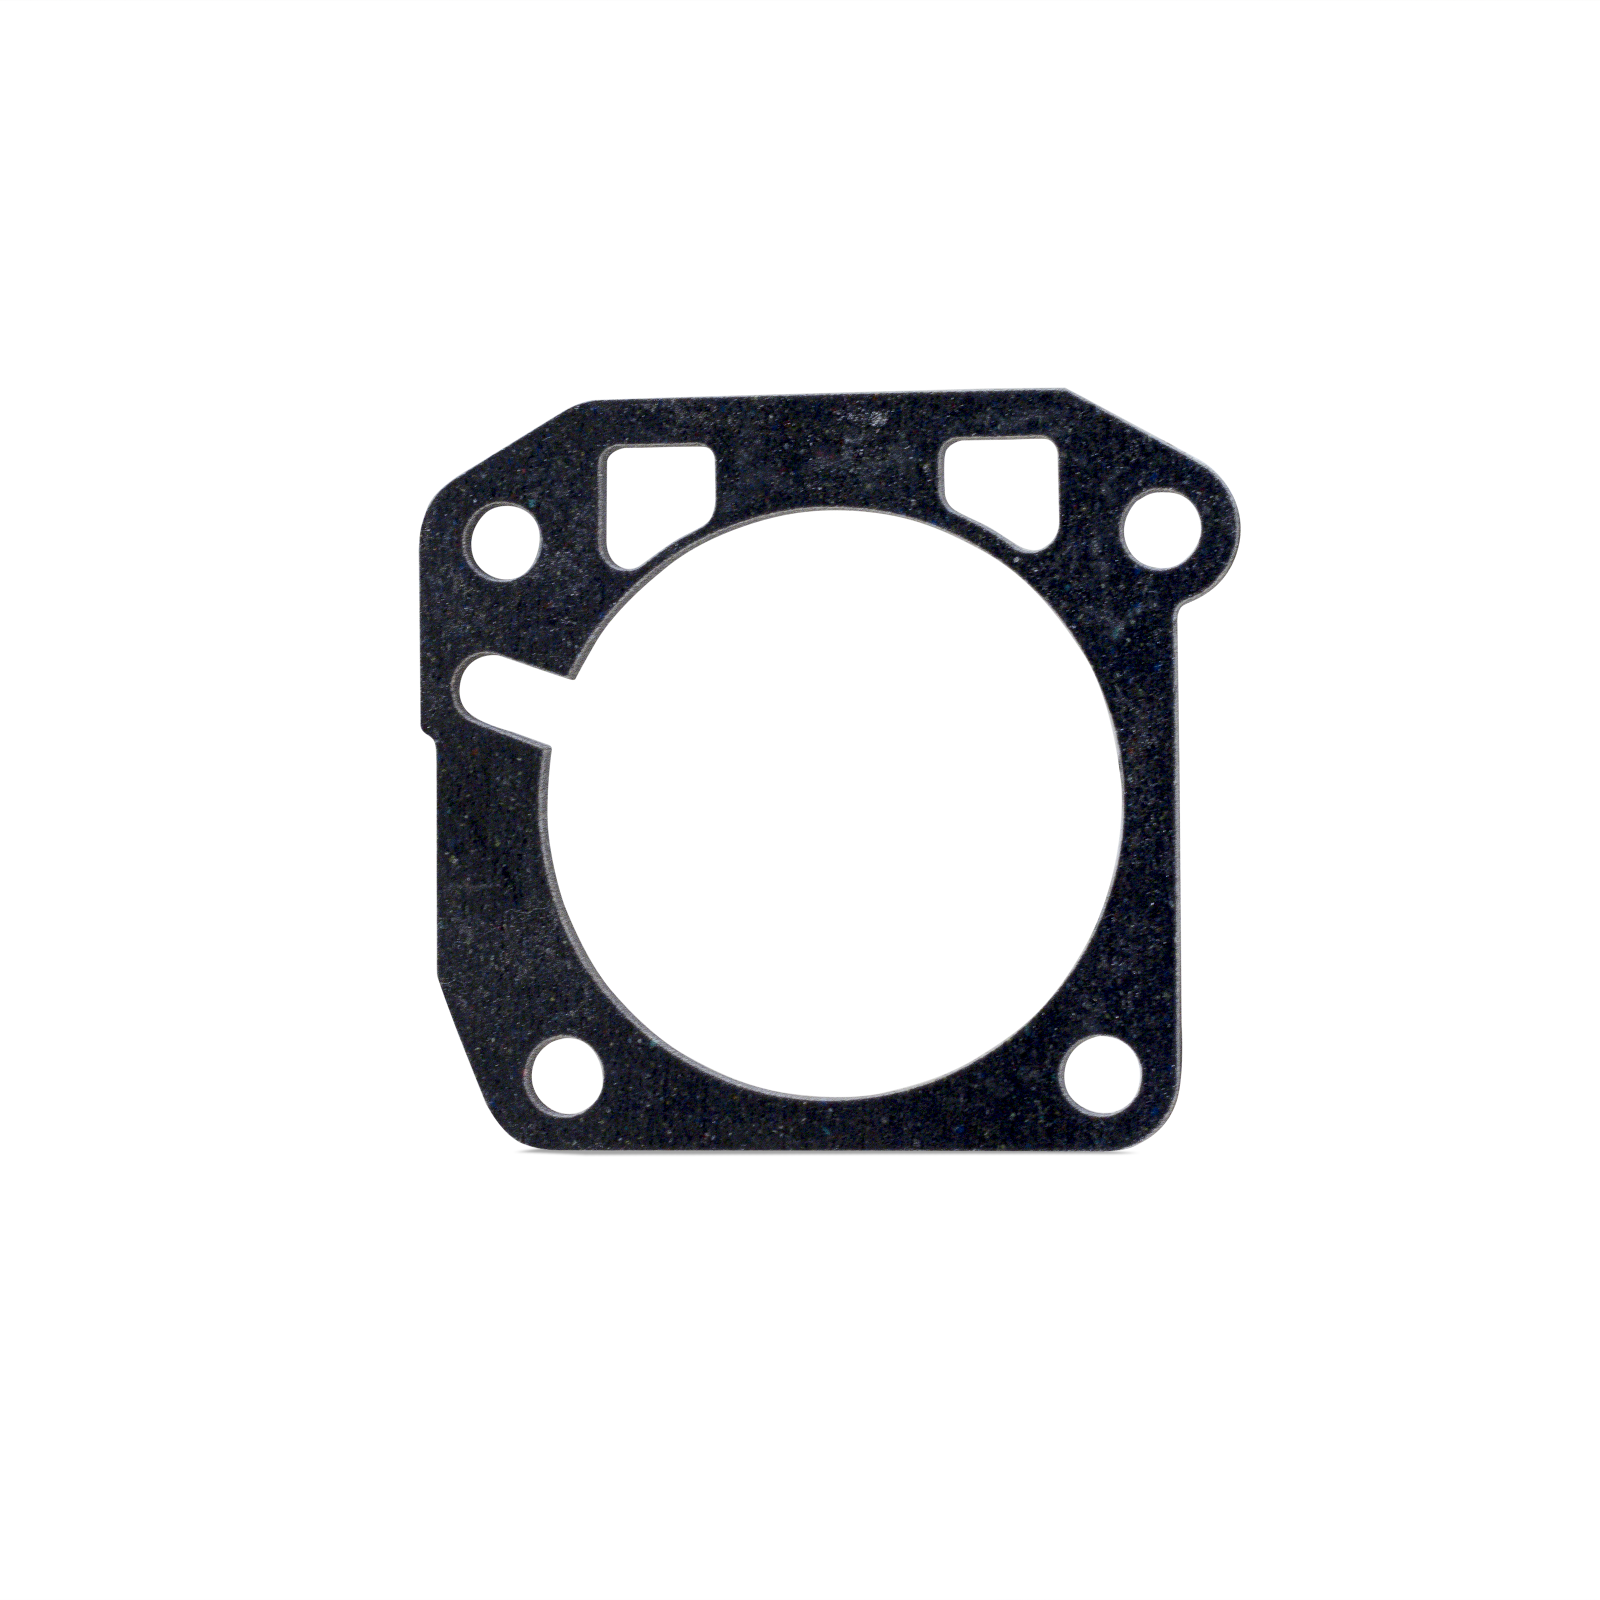 Skunk2 70mm Thermal Throttle Body Gasket